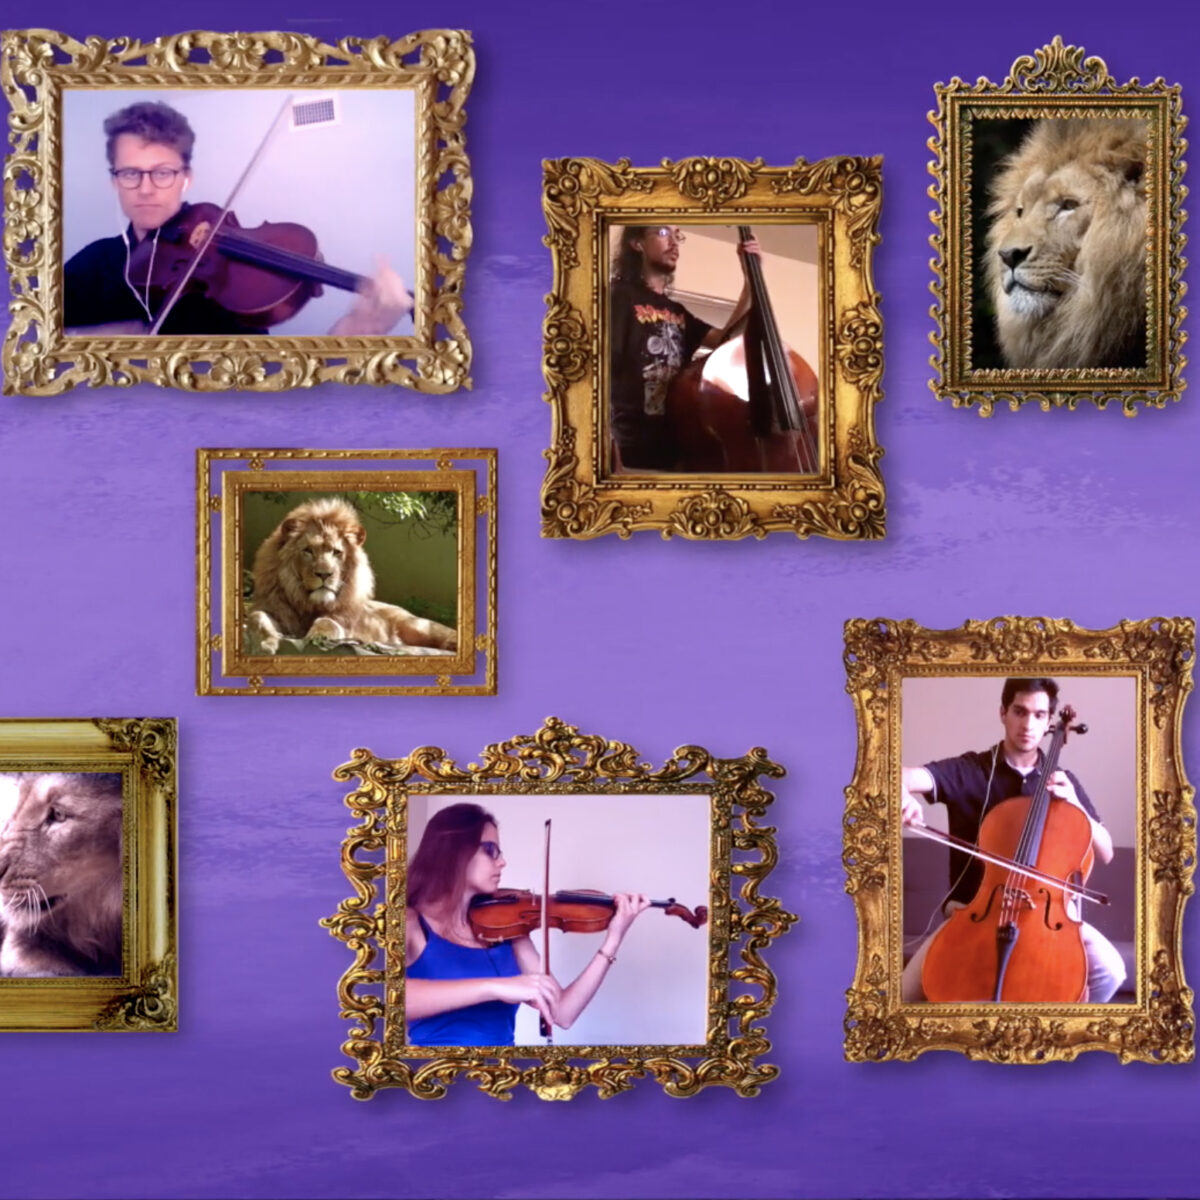 Screenshot from video showing musicians in gold picture frames surrounded by animals